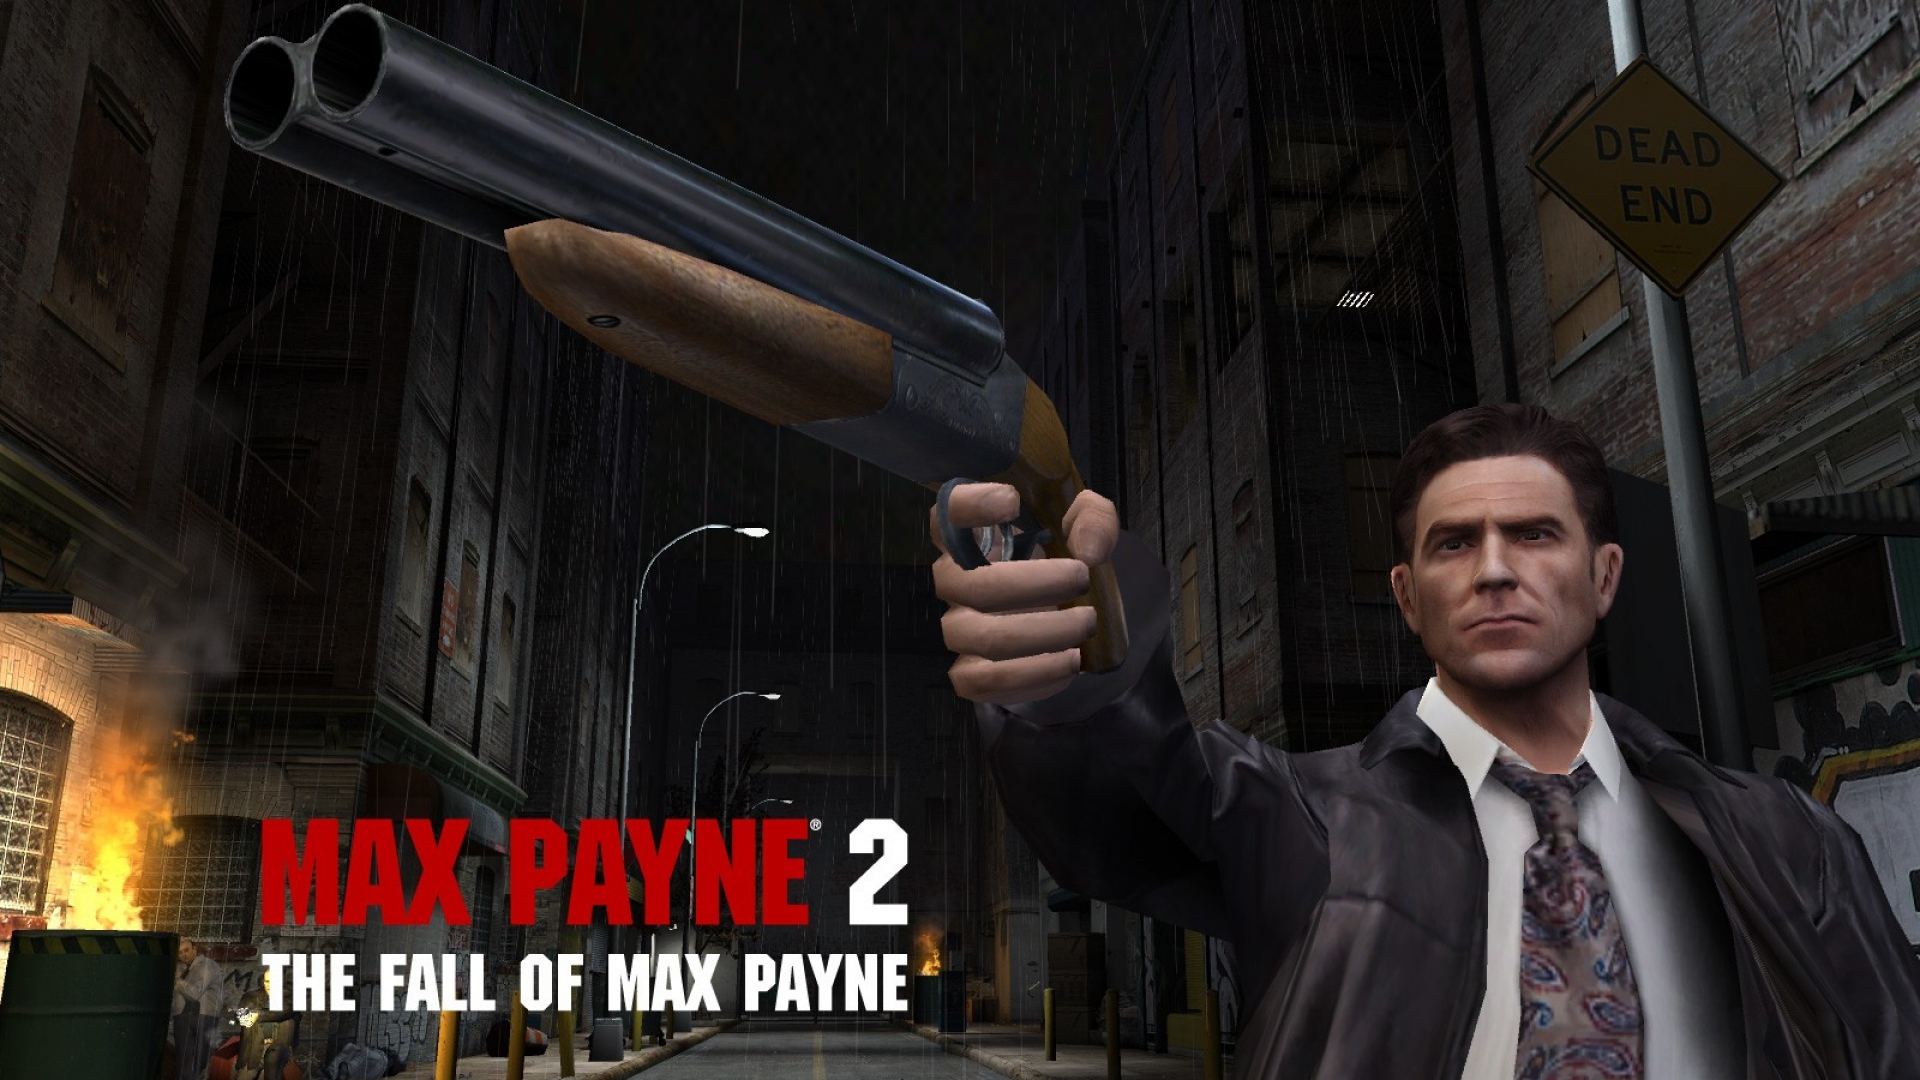 Fall Max Payne Hd Wallpapers Download Wallpaper 1920x1080 Max Payne 2 The Fall Of Max